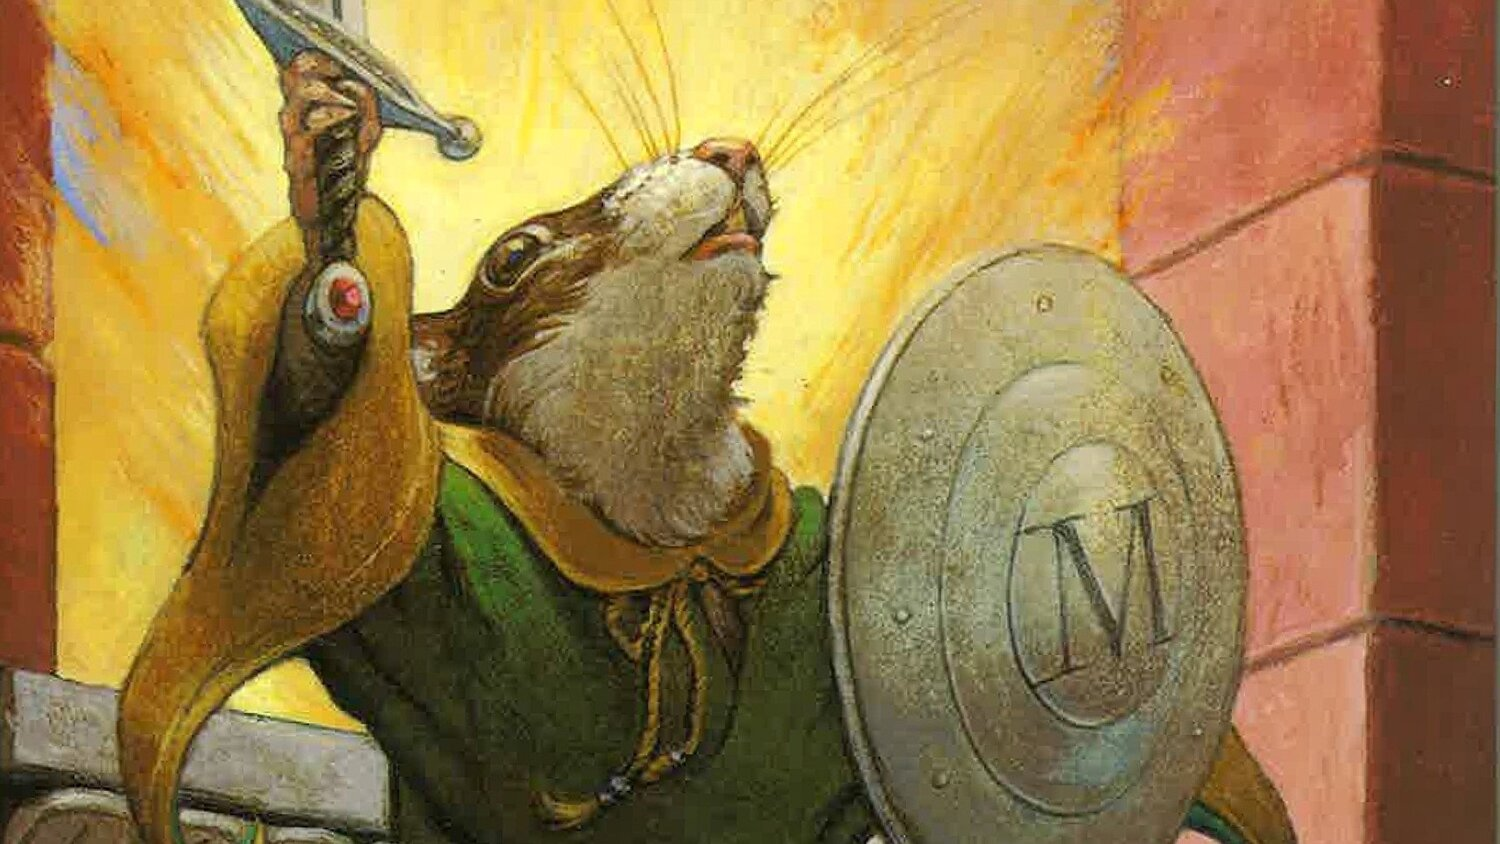 The Fantasy Novel Series REDWALL Is Being Adapted Into an Animated Film and Series by Netflix — GeekTyrant